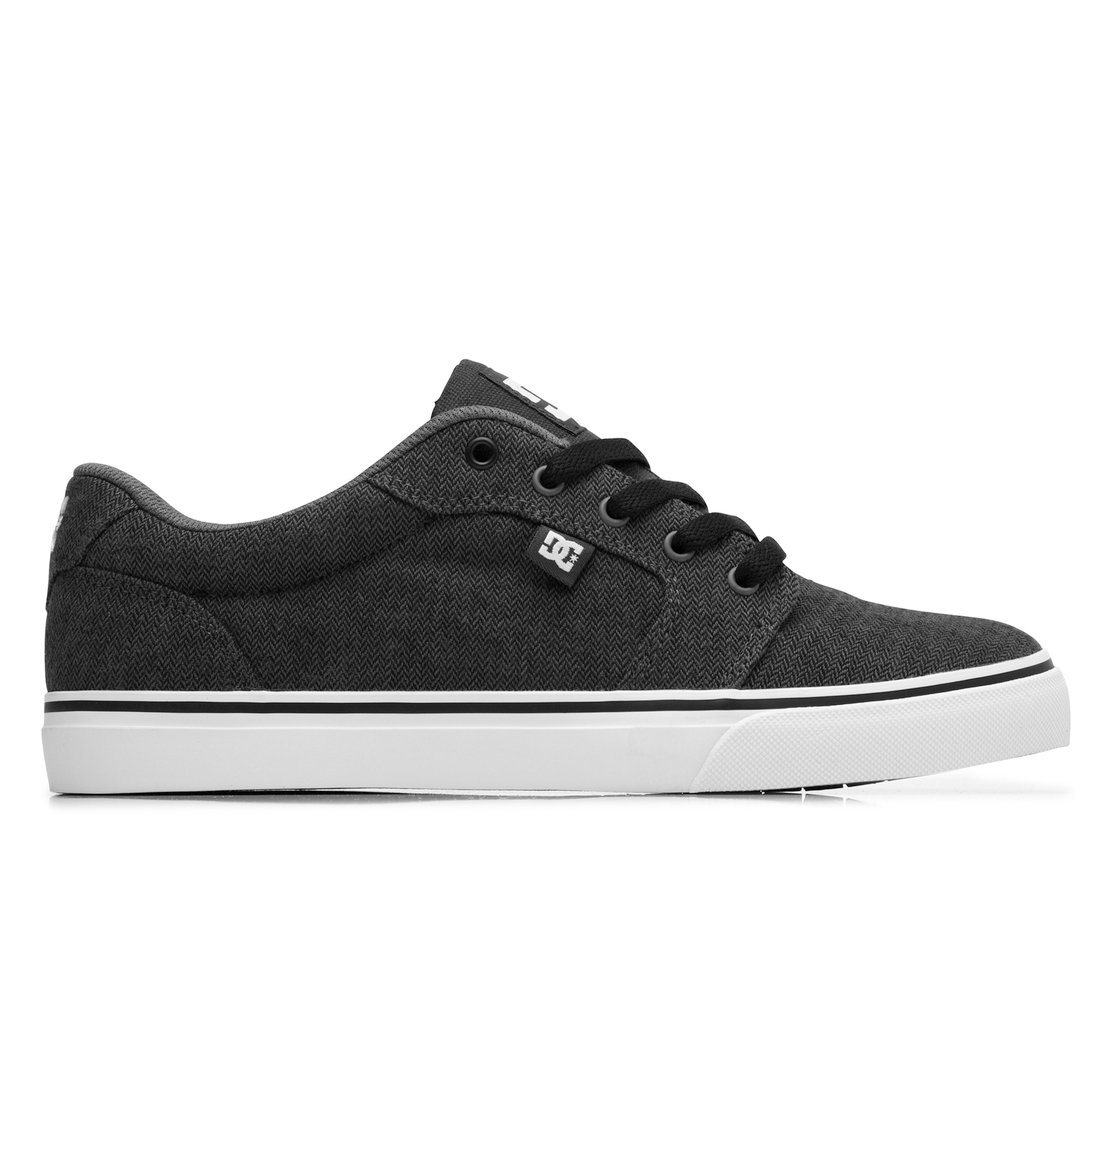 DC Shoes Tonik Se - Low-Top Shoes - Zapatillas Bajas - Hombre - EU 43